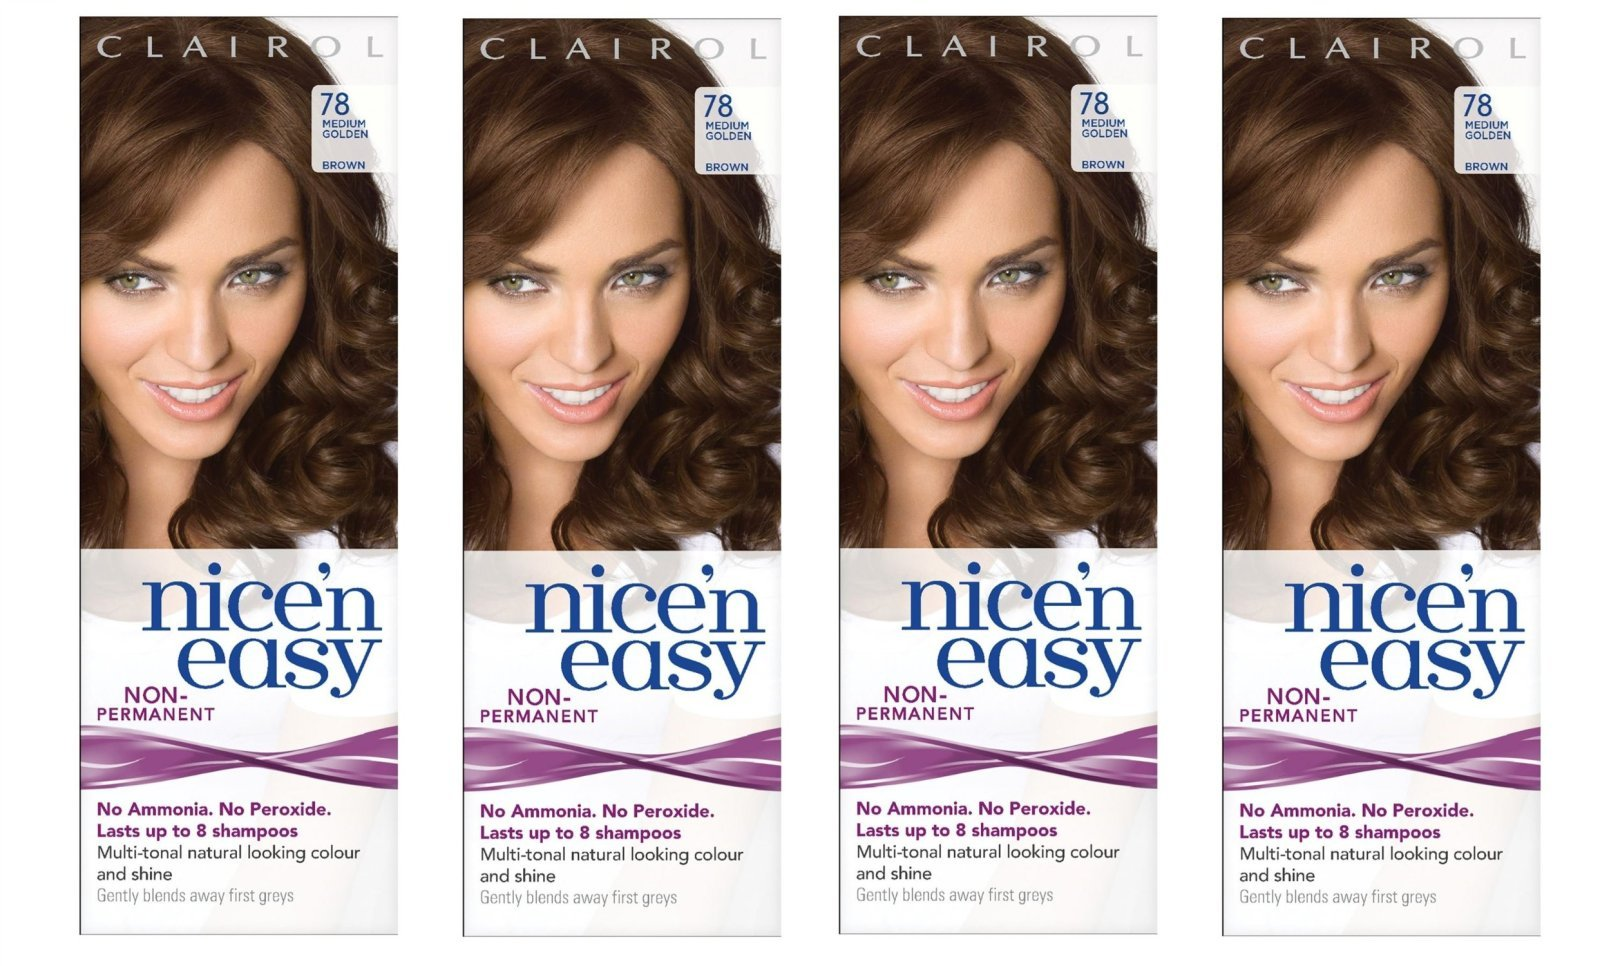 Clairol Nice n' Easy Hair Color #78 Medium Golden Brown (Pack of 4) UK Loving Care + FREE Old Spice Deadlock Spiking Glue, Travel Size.84 Oz